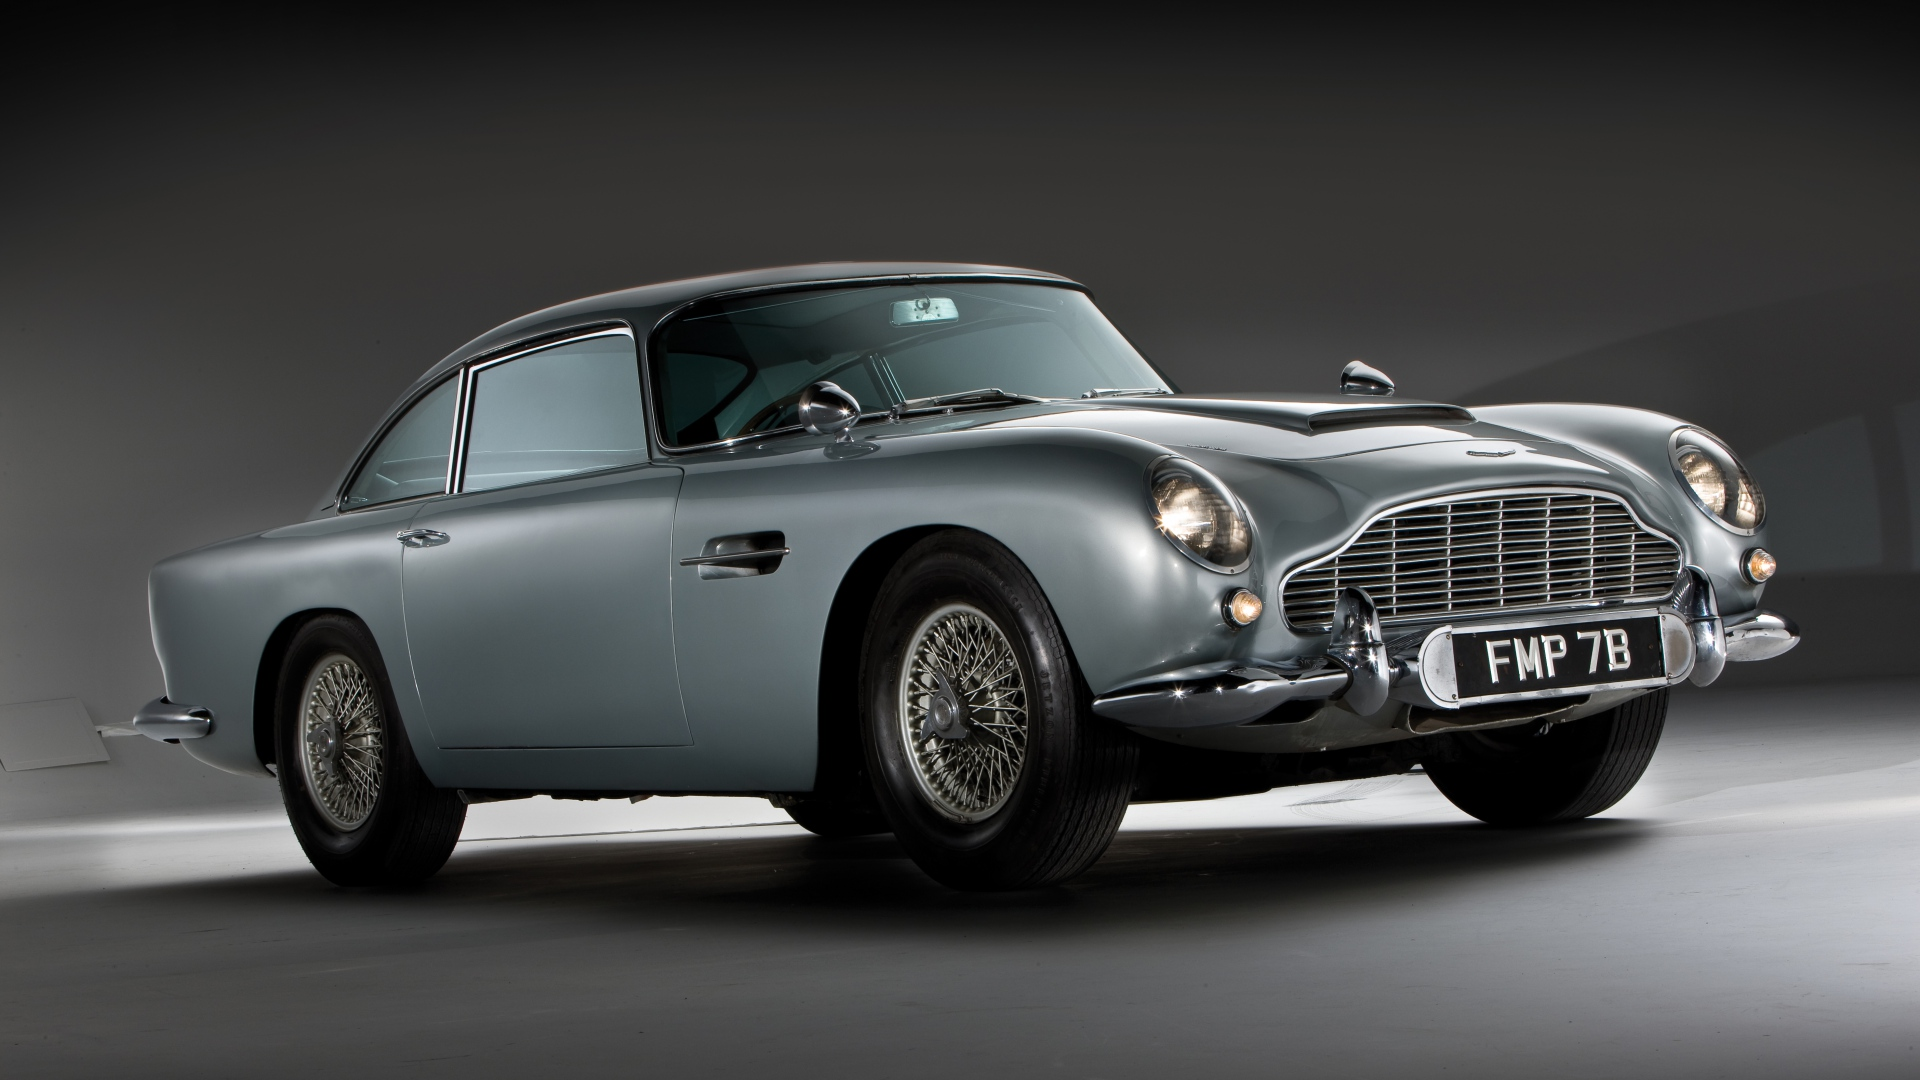 Aston Martin DB5 1964 Old Model Vintage Car Wallpaper Wallpapers 1920x1080